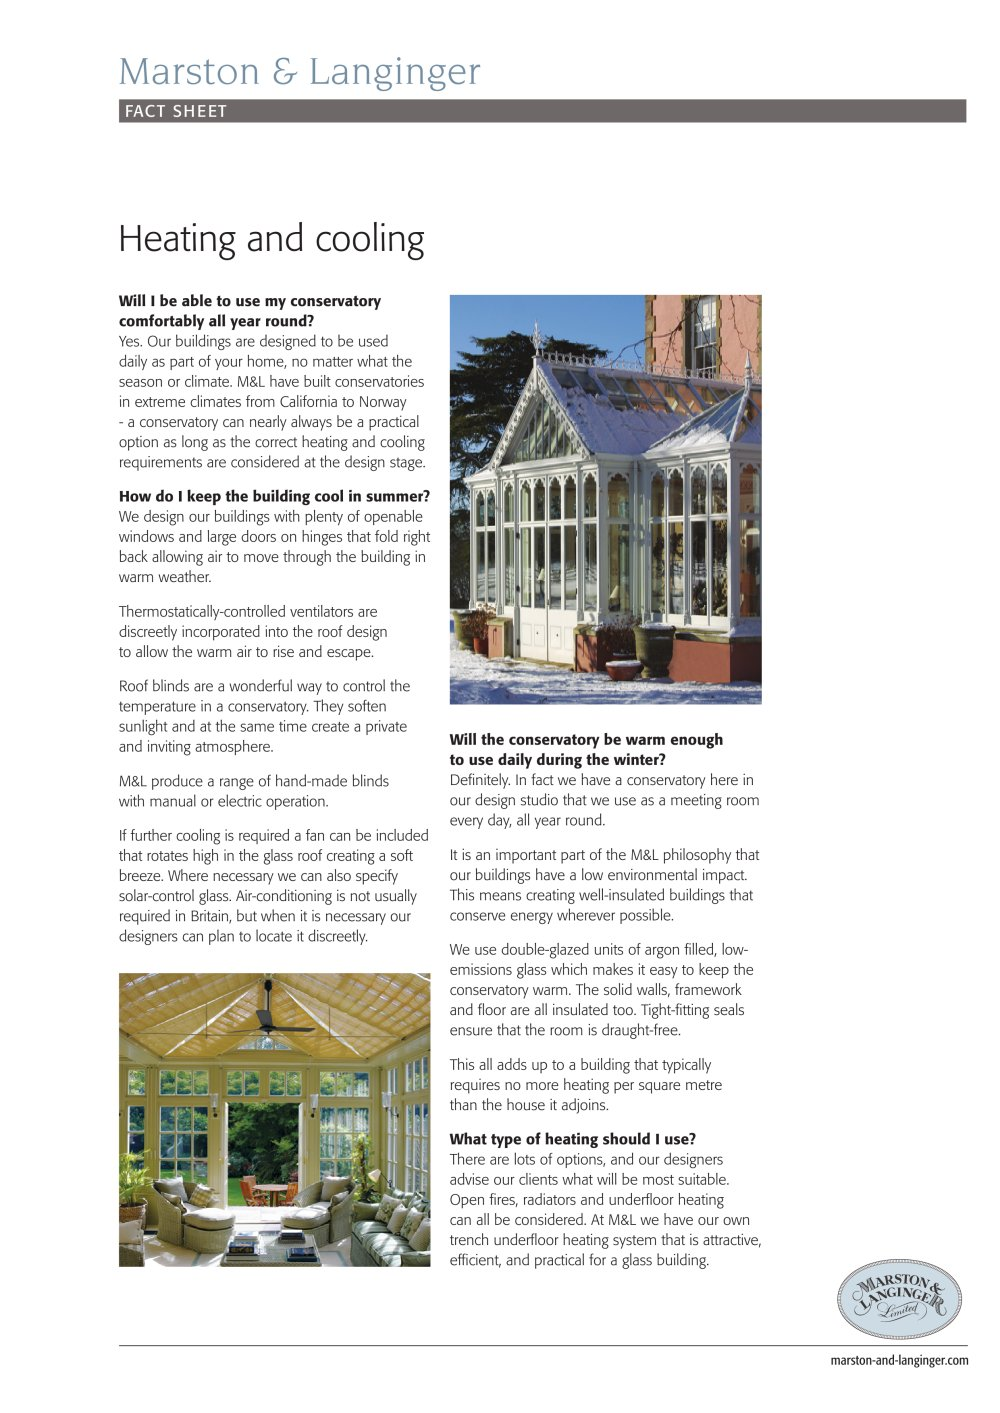 Heating & cooling a conservatory - Marston & Langinger - PDF ... on open air cooking, open air bathroom, open floor house designs, open-air bedroom designs, open air shed designs, open air furniture, bungaloo open-air designs, open air architecture, open air fireplaces, unique exotic home designs, open air dining room, open air porch designs, open air restaurants, open air beach house, holiday open house templetes designs, open floor plan home designs, open-air bungalow designs, open-air chicken co-op designs,